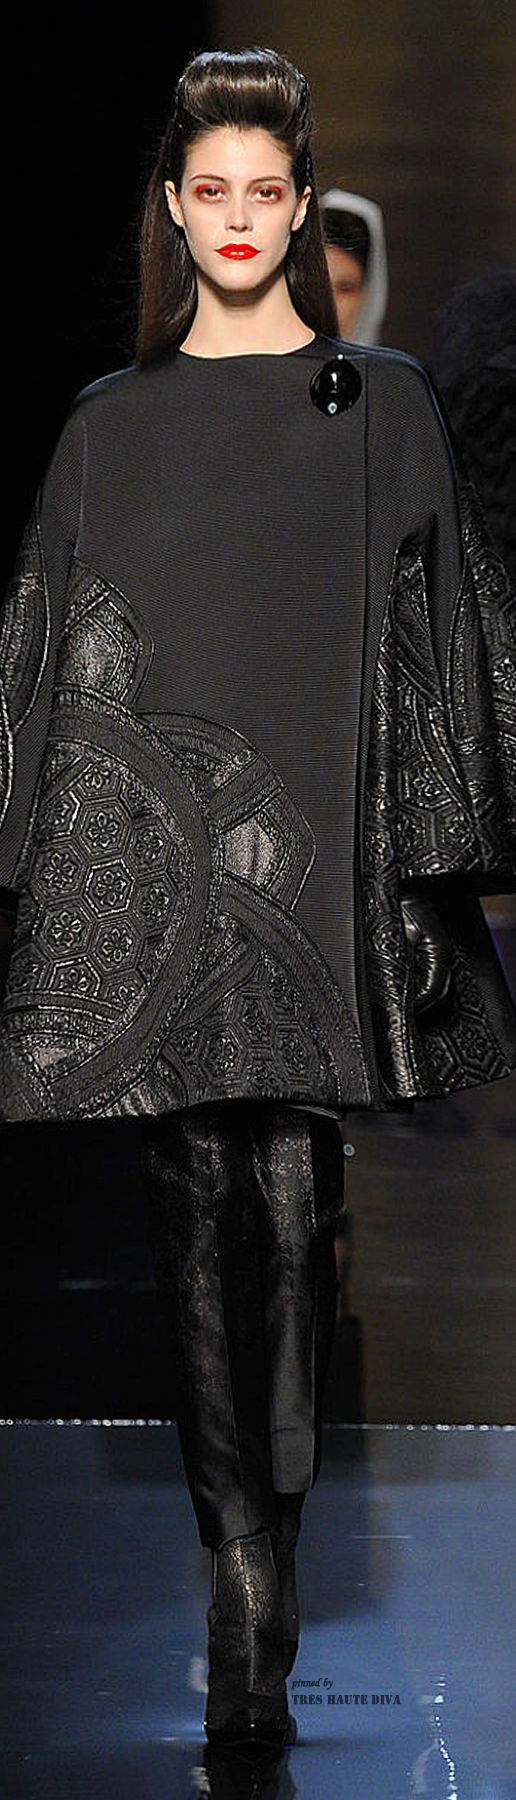 Jean Paul Gaultier Haute Couture Fall 2014. The applique could be leather, metal, painted fabric, tyvek - experiment!